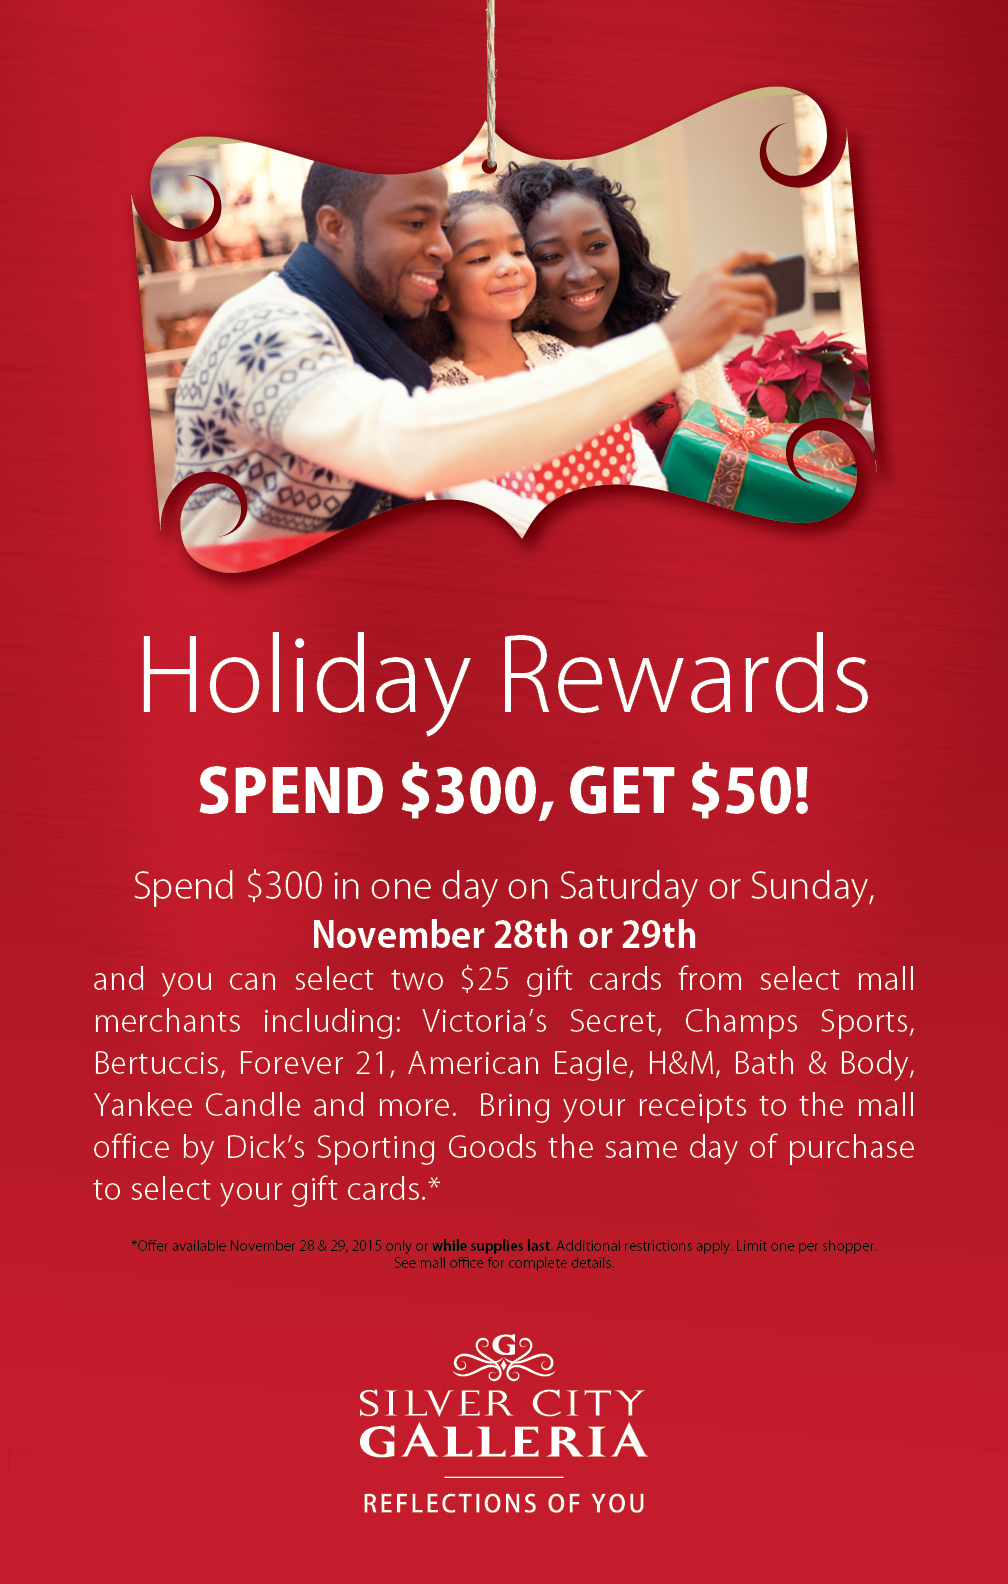 Holiday Rewards Ad Design for Silver City Galleria by Cybergraph®